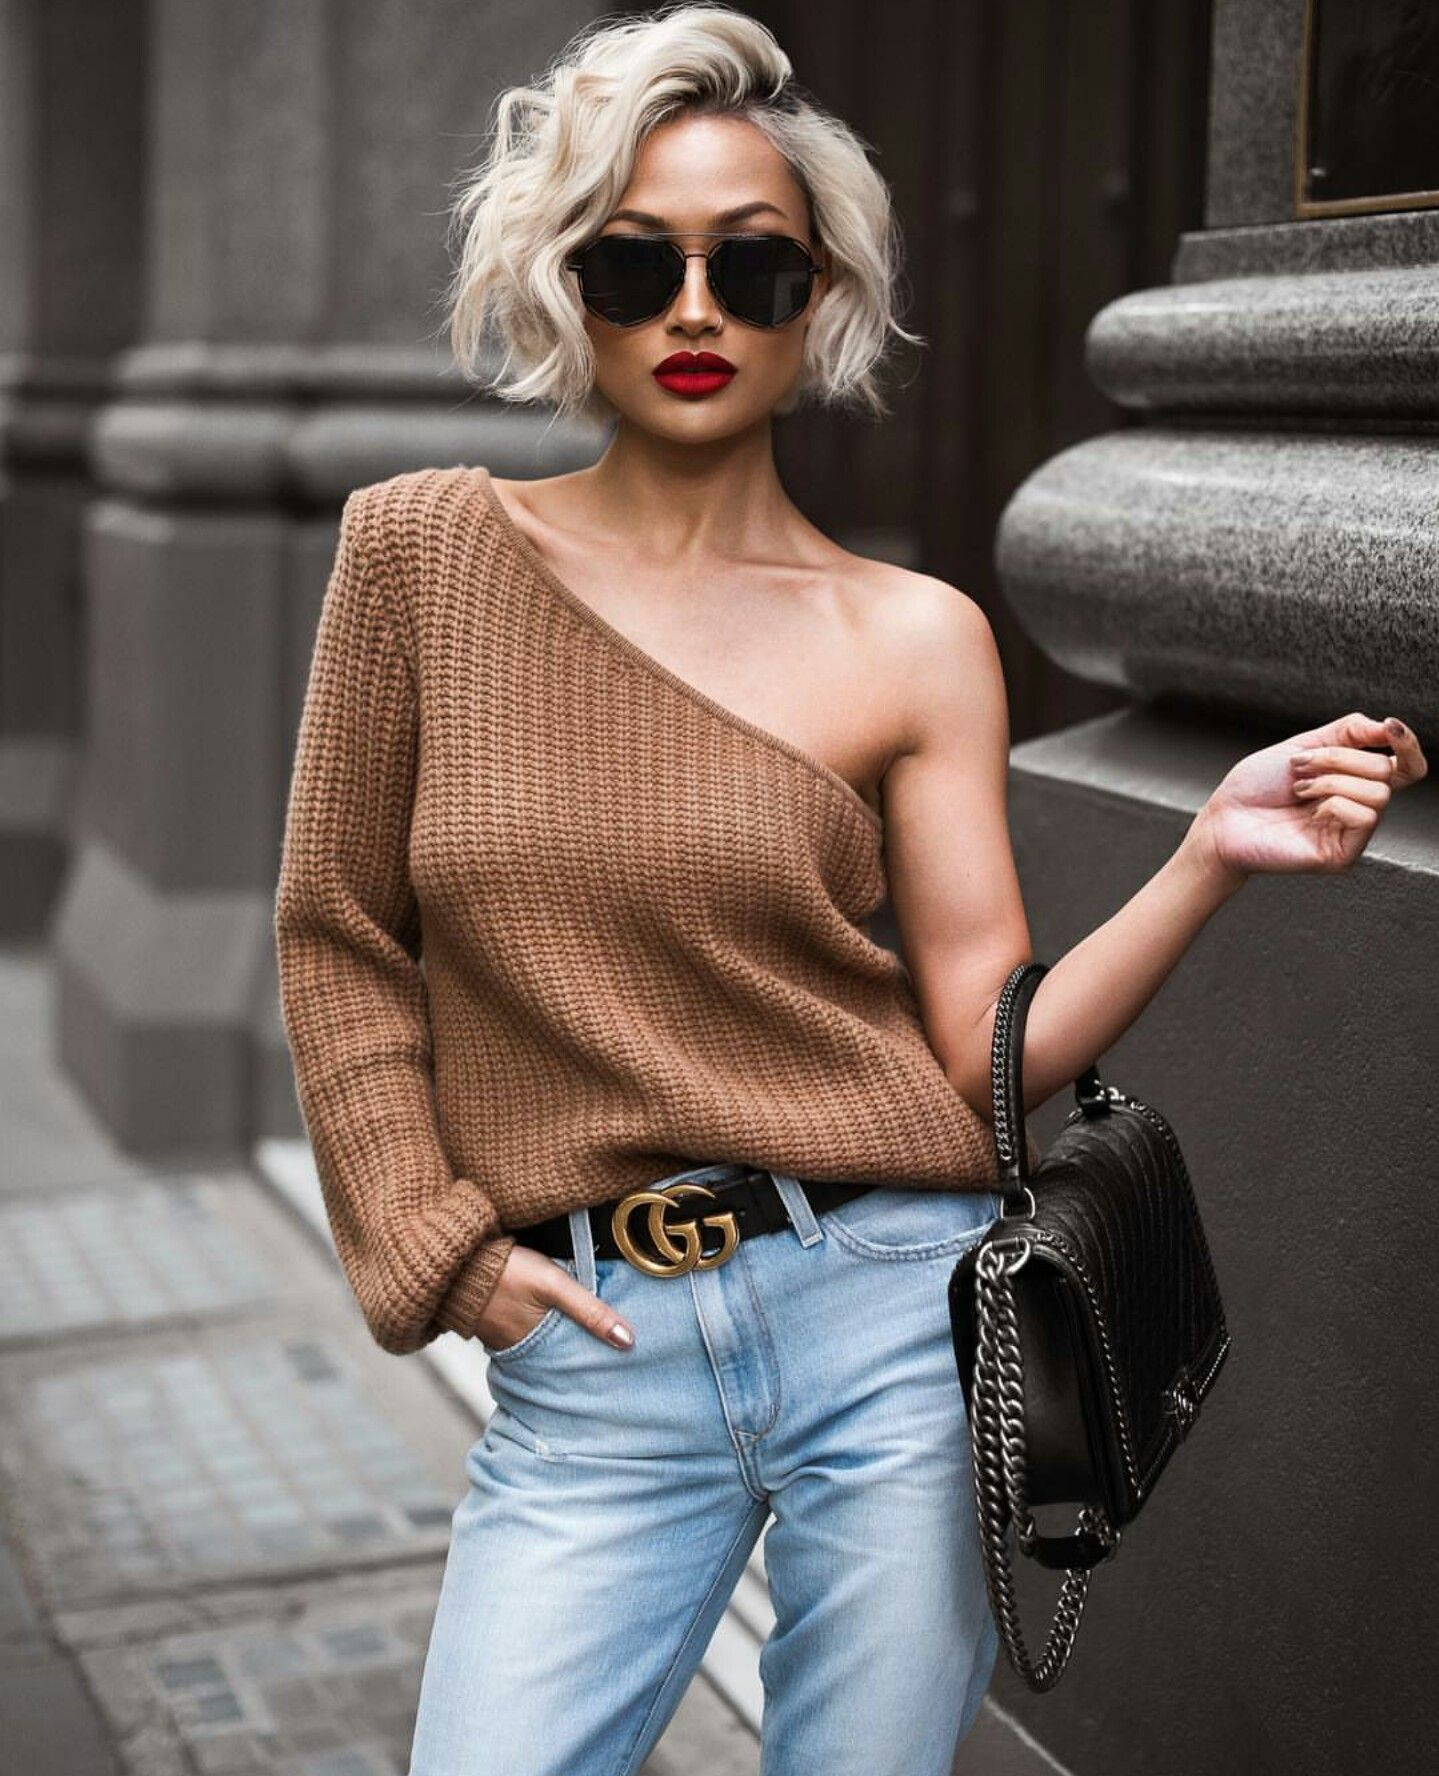 0602f8c2fb73 The One Shoulder Trend Is Hot Right Now - 2018 Fashion Trends